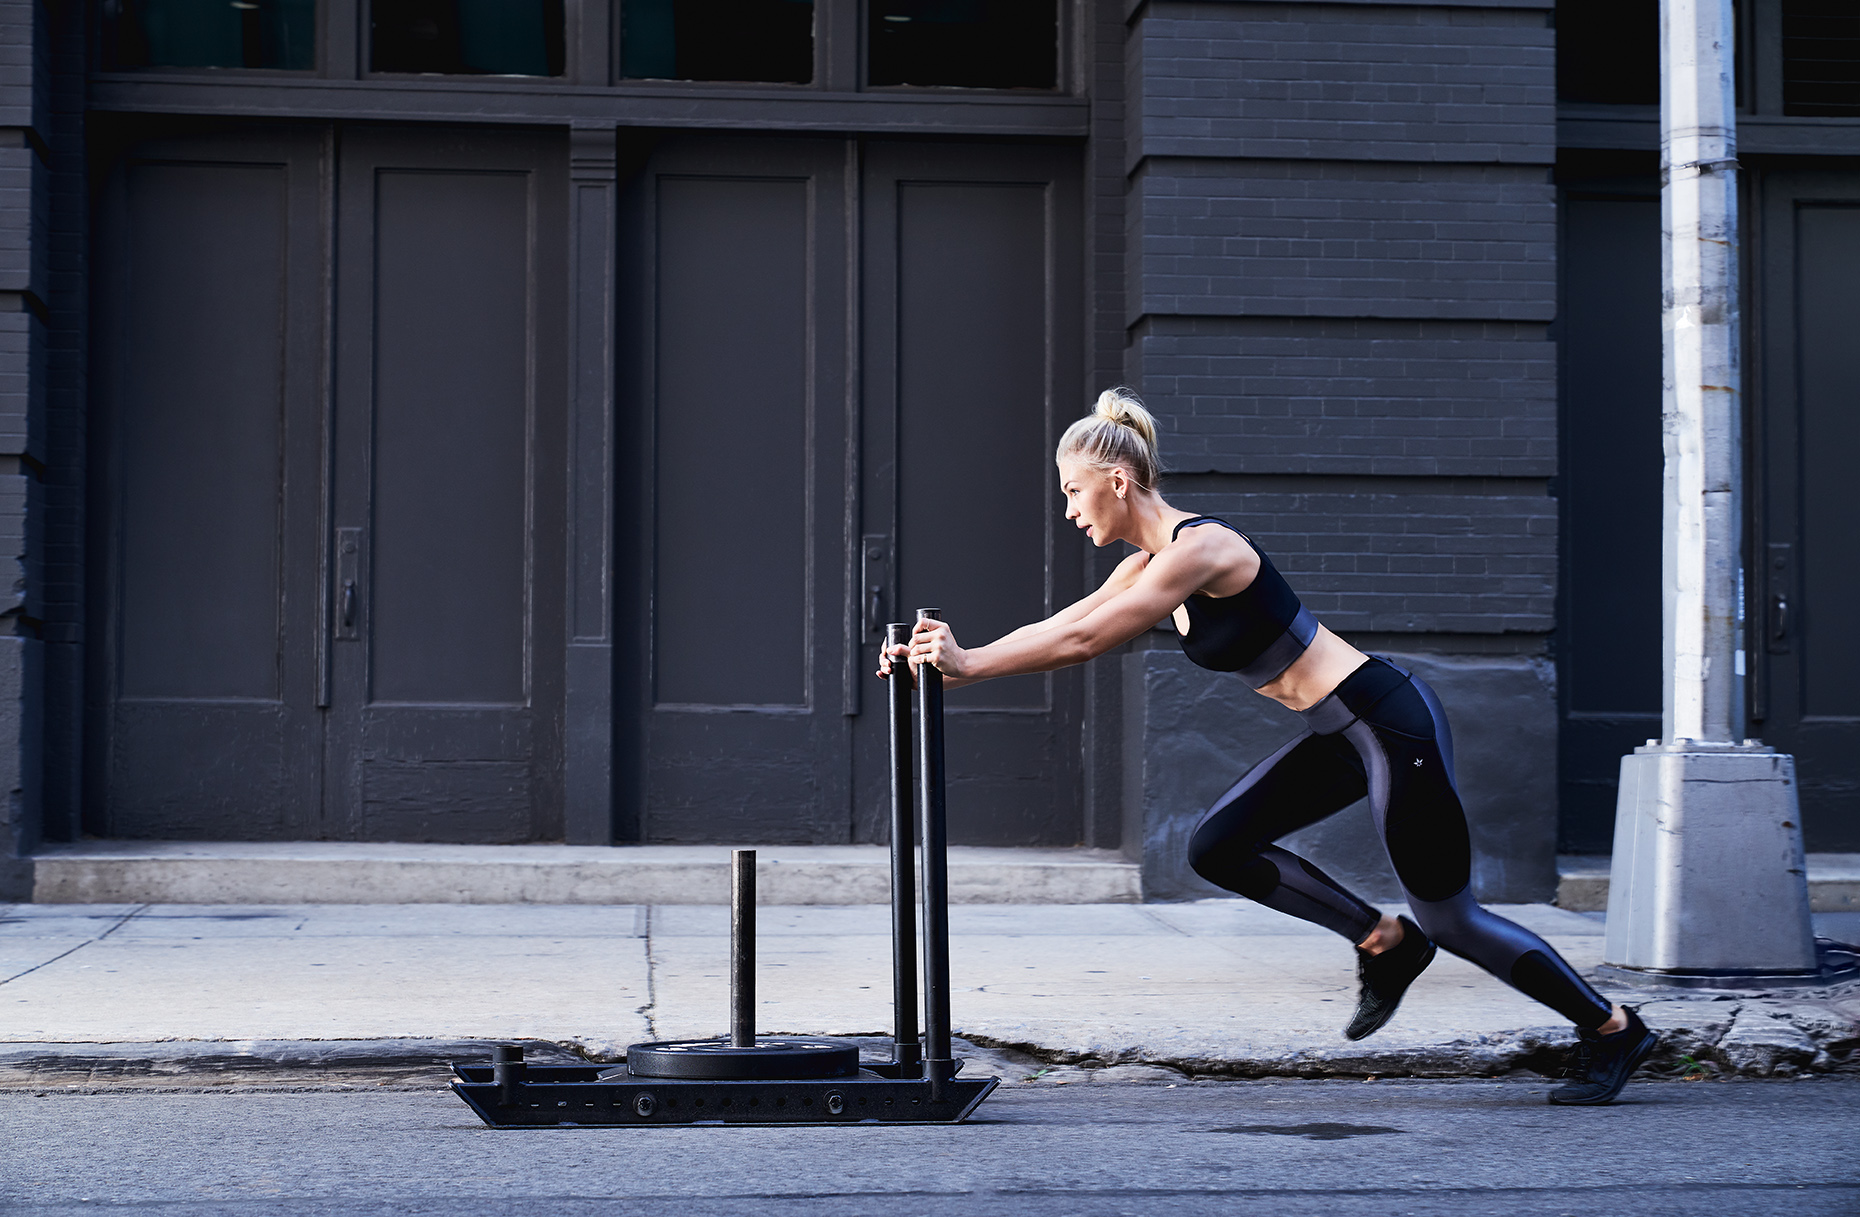 NY Fitness Lifestyle Photographer